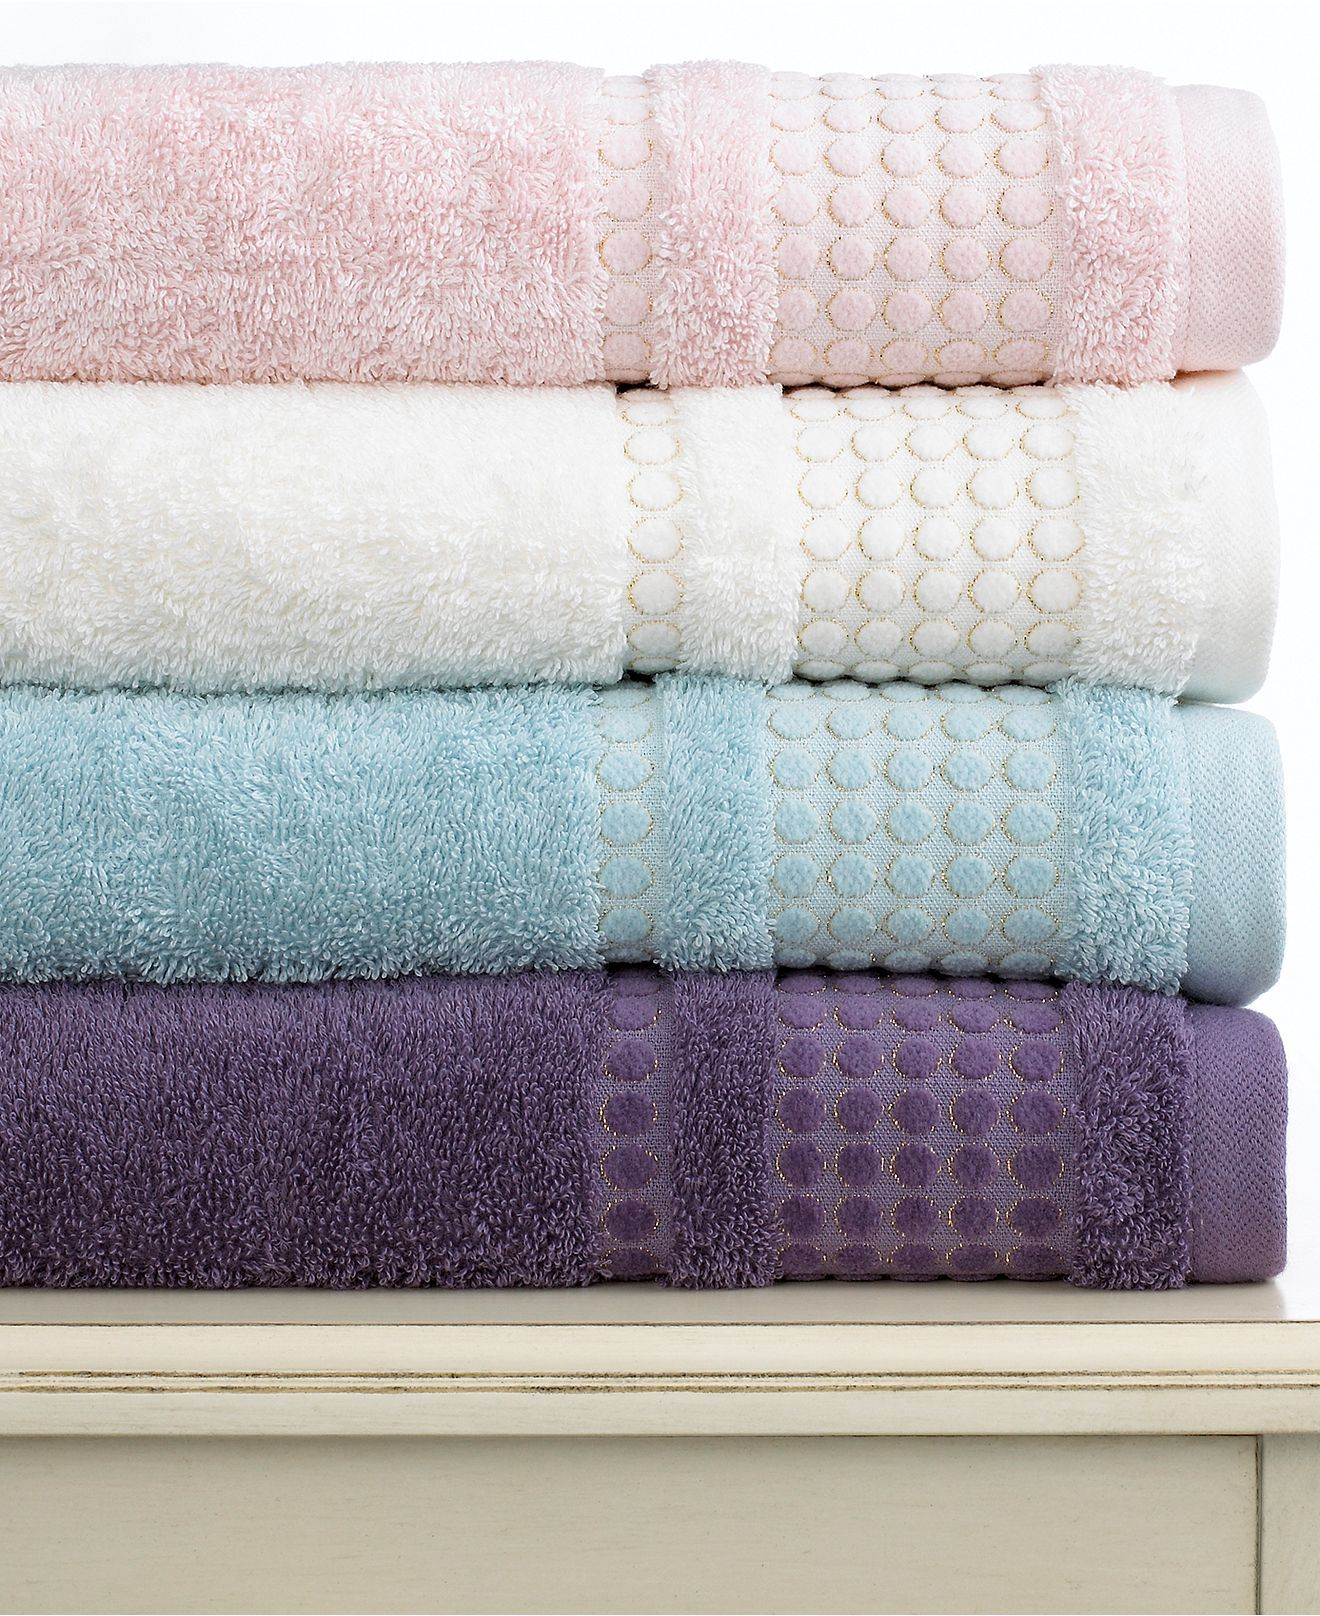 Hydrocotton Bath Towels Simple Bianca Bath Towels Art Deco Collection  Bath Towels  Bed & Bath Inspiration Design